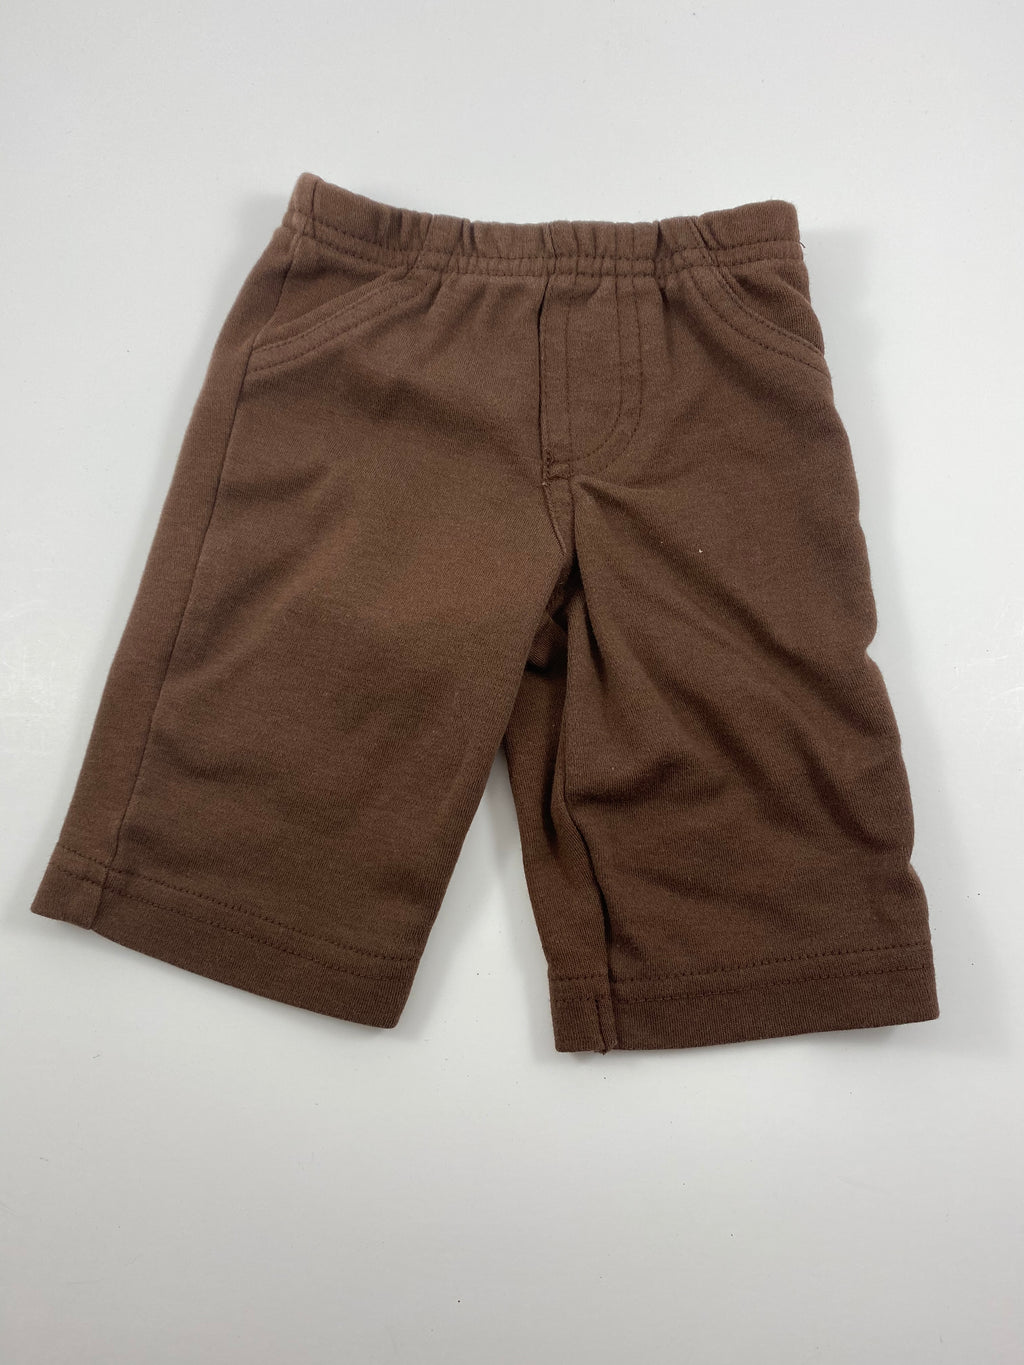 Boy's Pants - Size Newborn